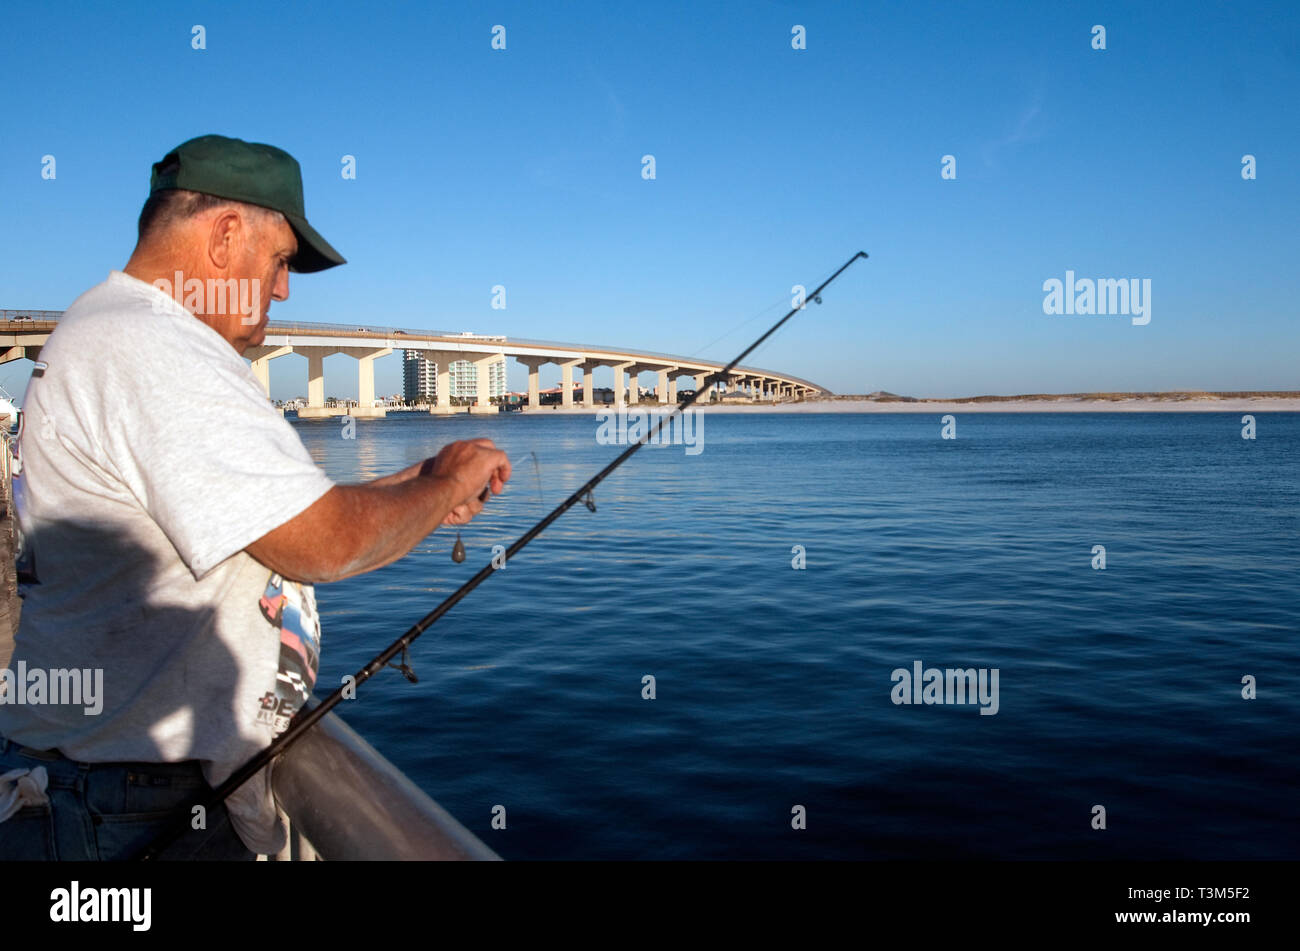 A fisherman baits his hook at Florida Point fishing pier Nov. 12, 2009 in Orange Beach, Alabama. Stock Photo